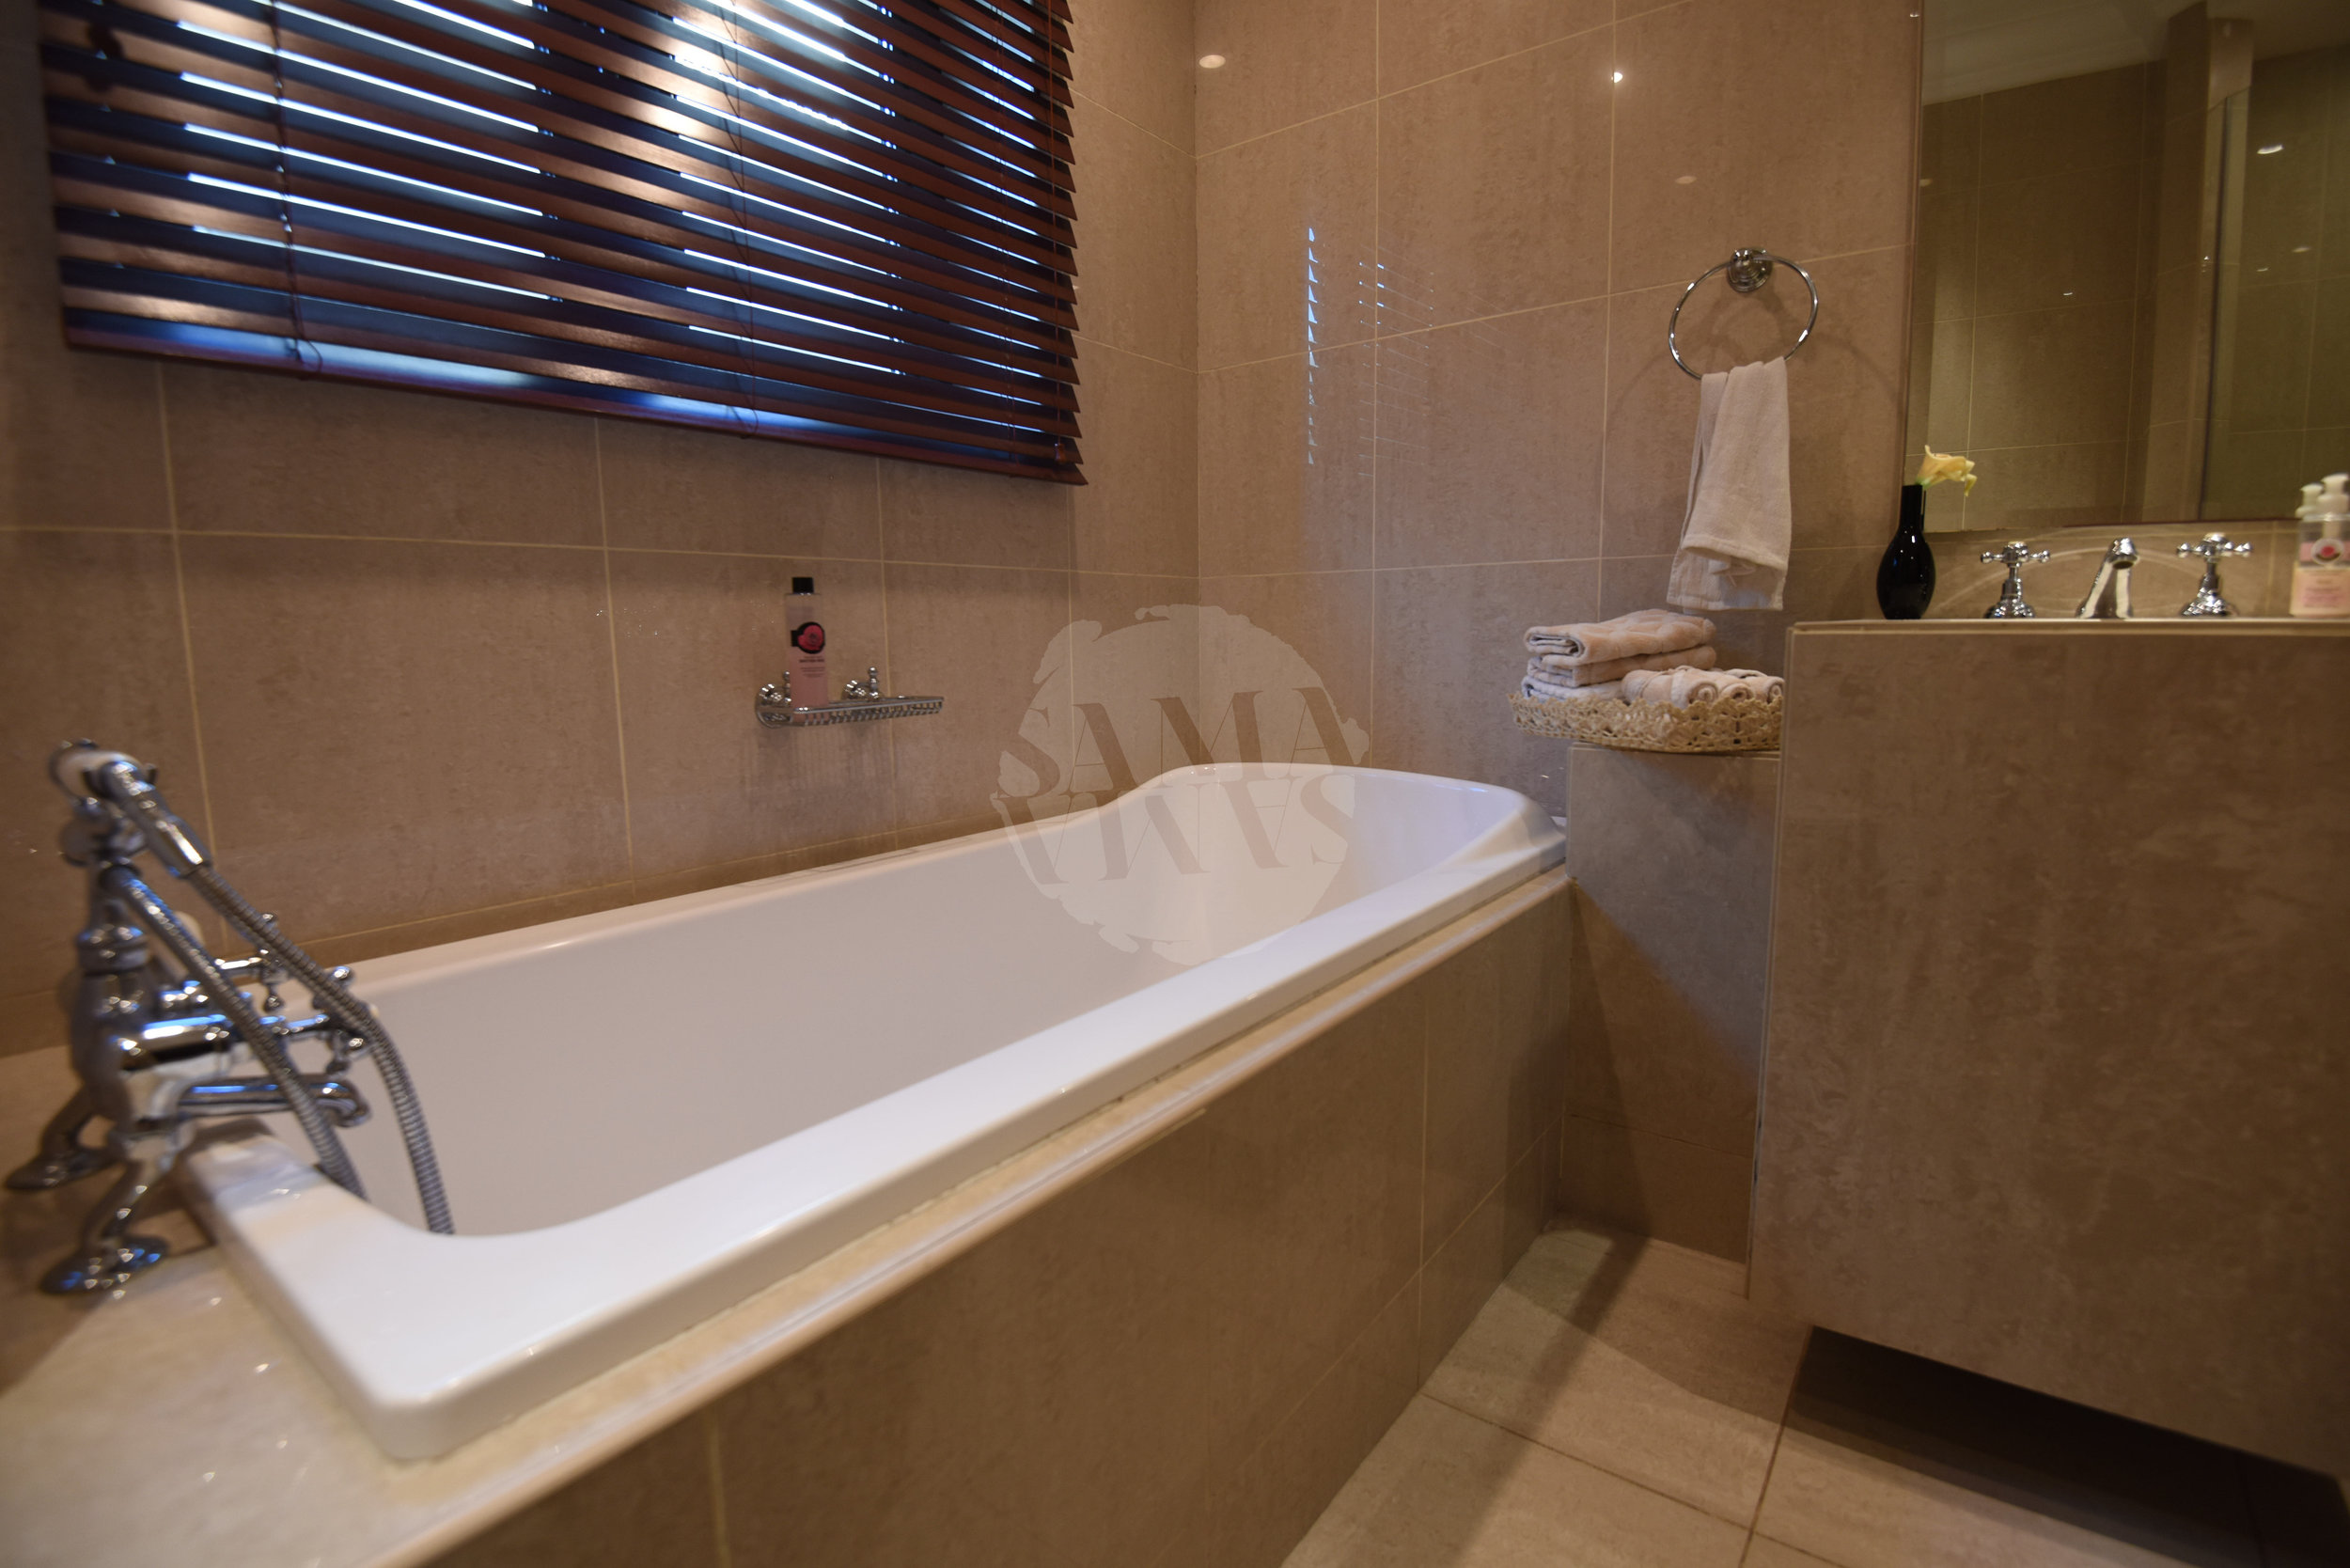 The luxurious bath is the perfect place to finish a long day